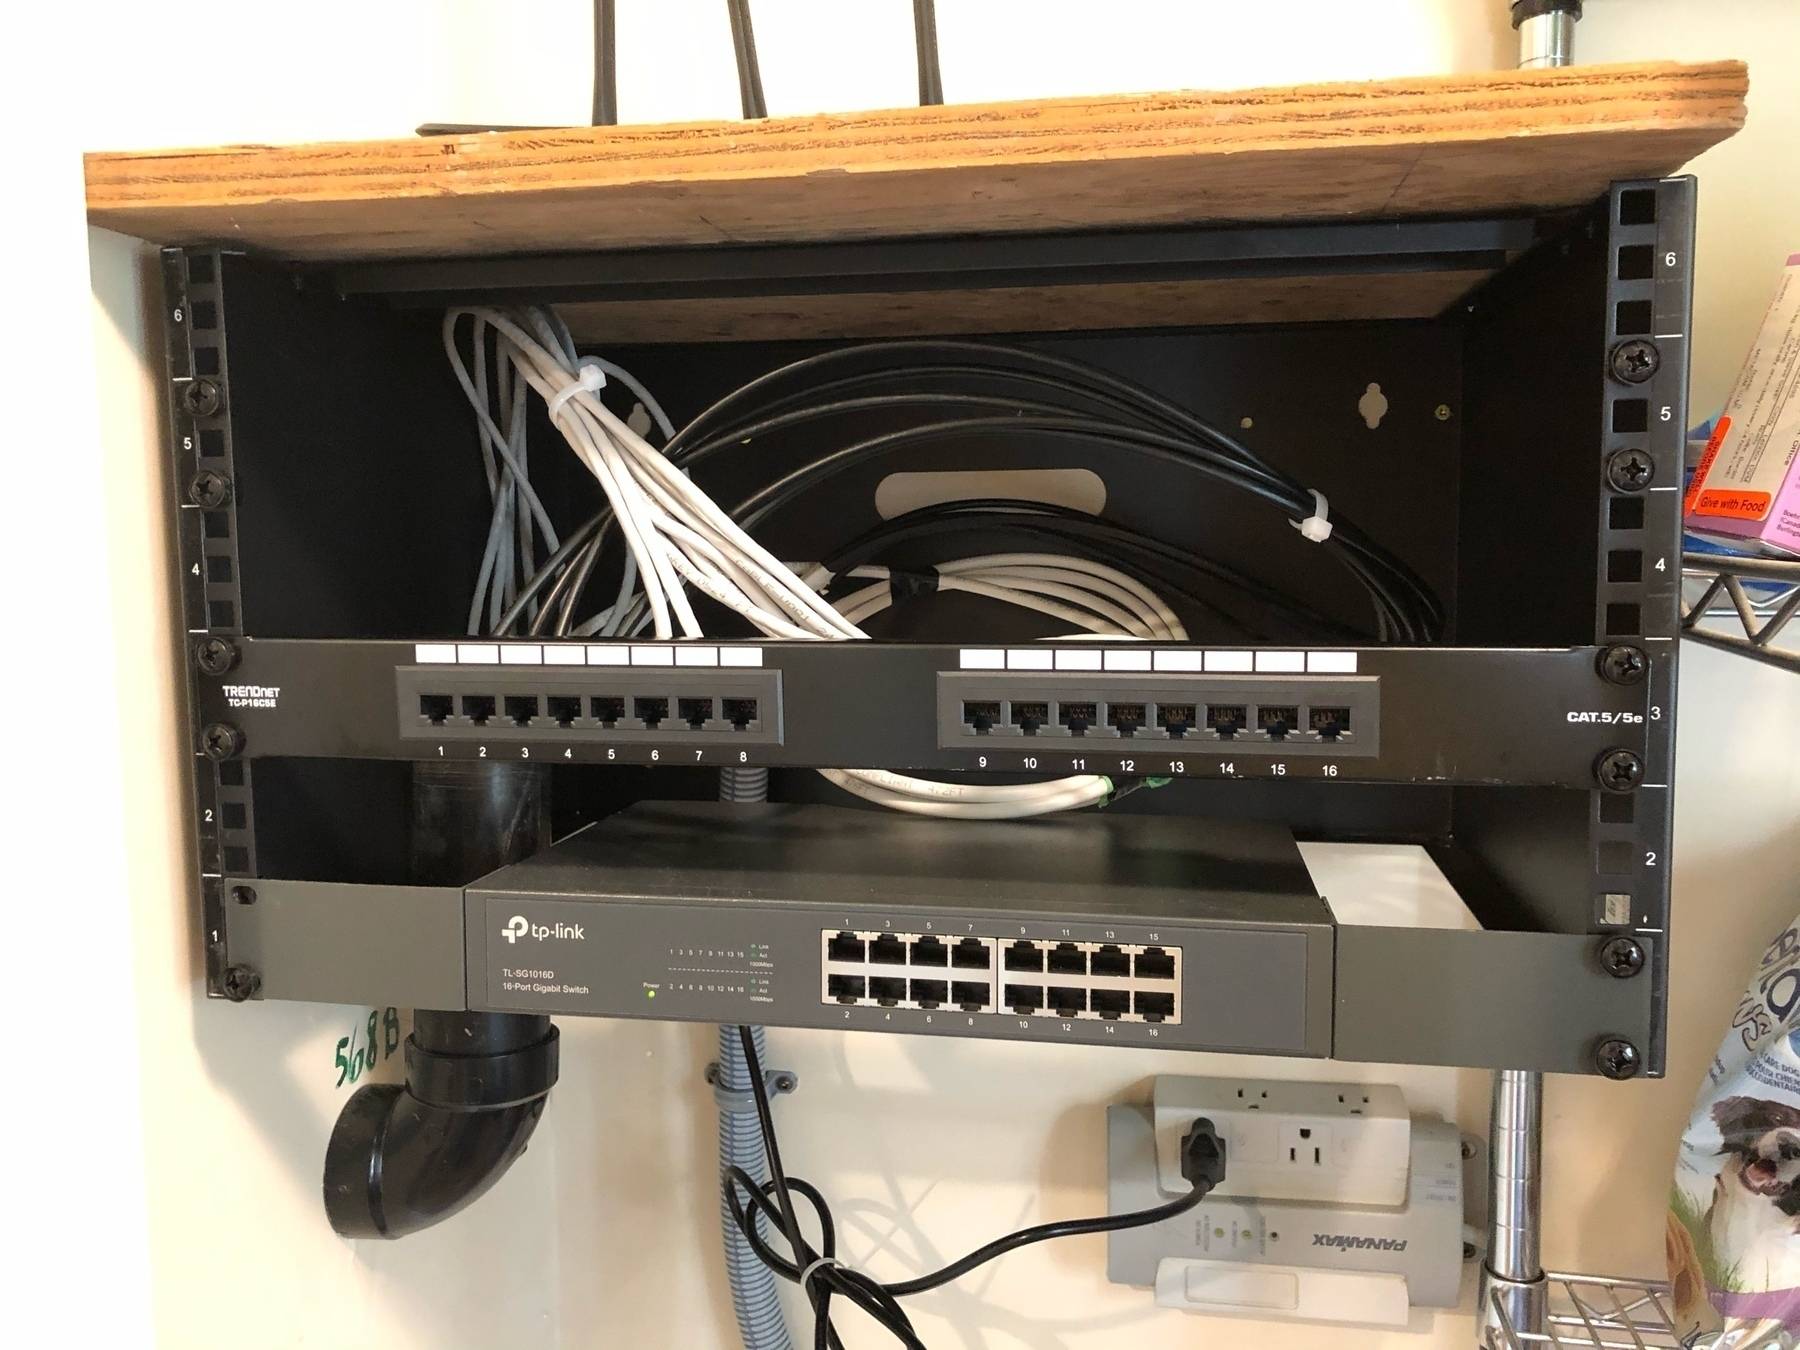 16 port patch panel installed over a switch with multiple cables bundled behind